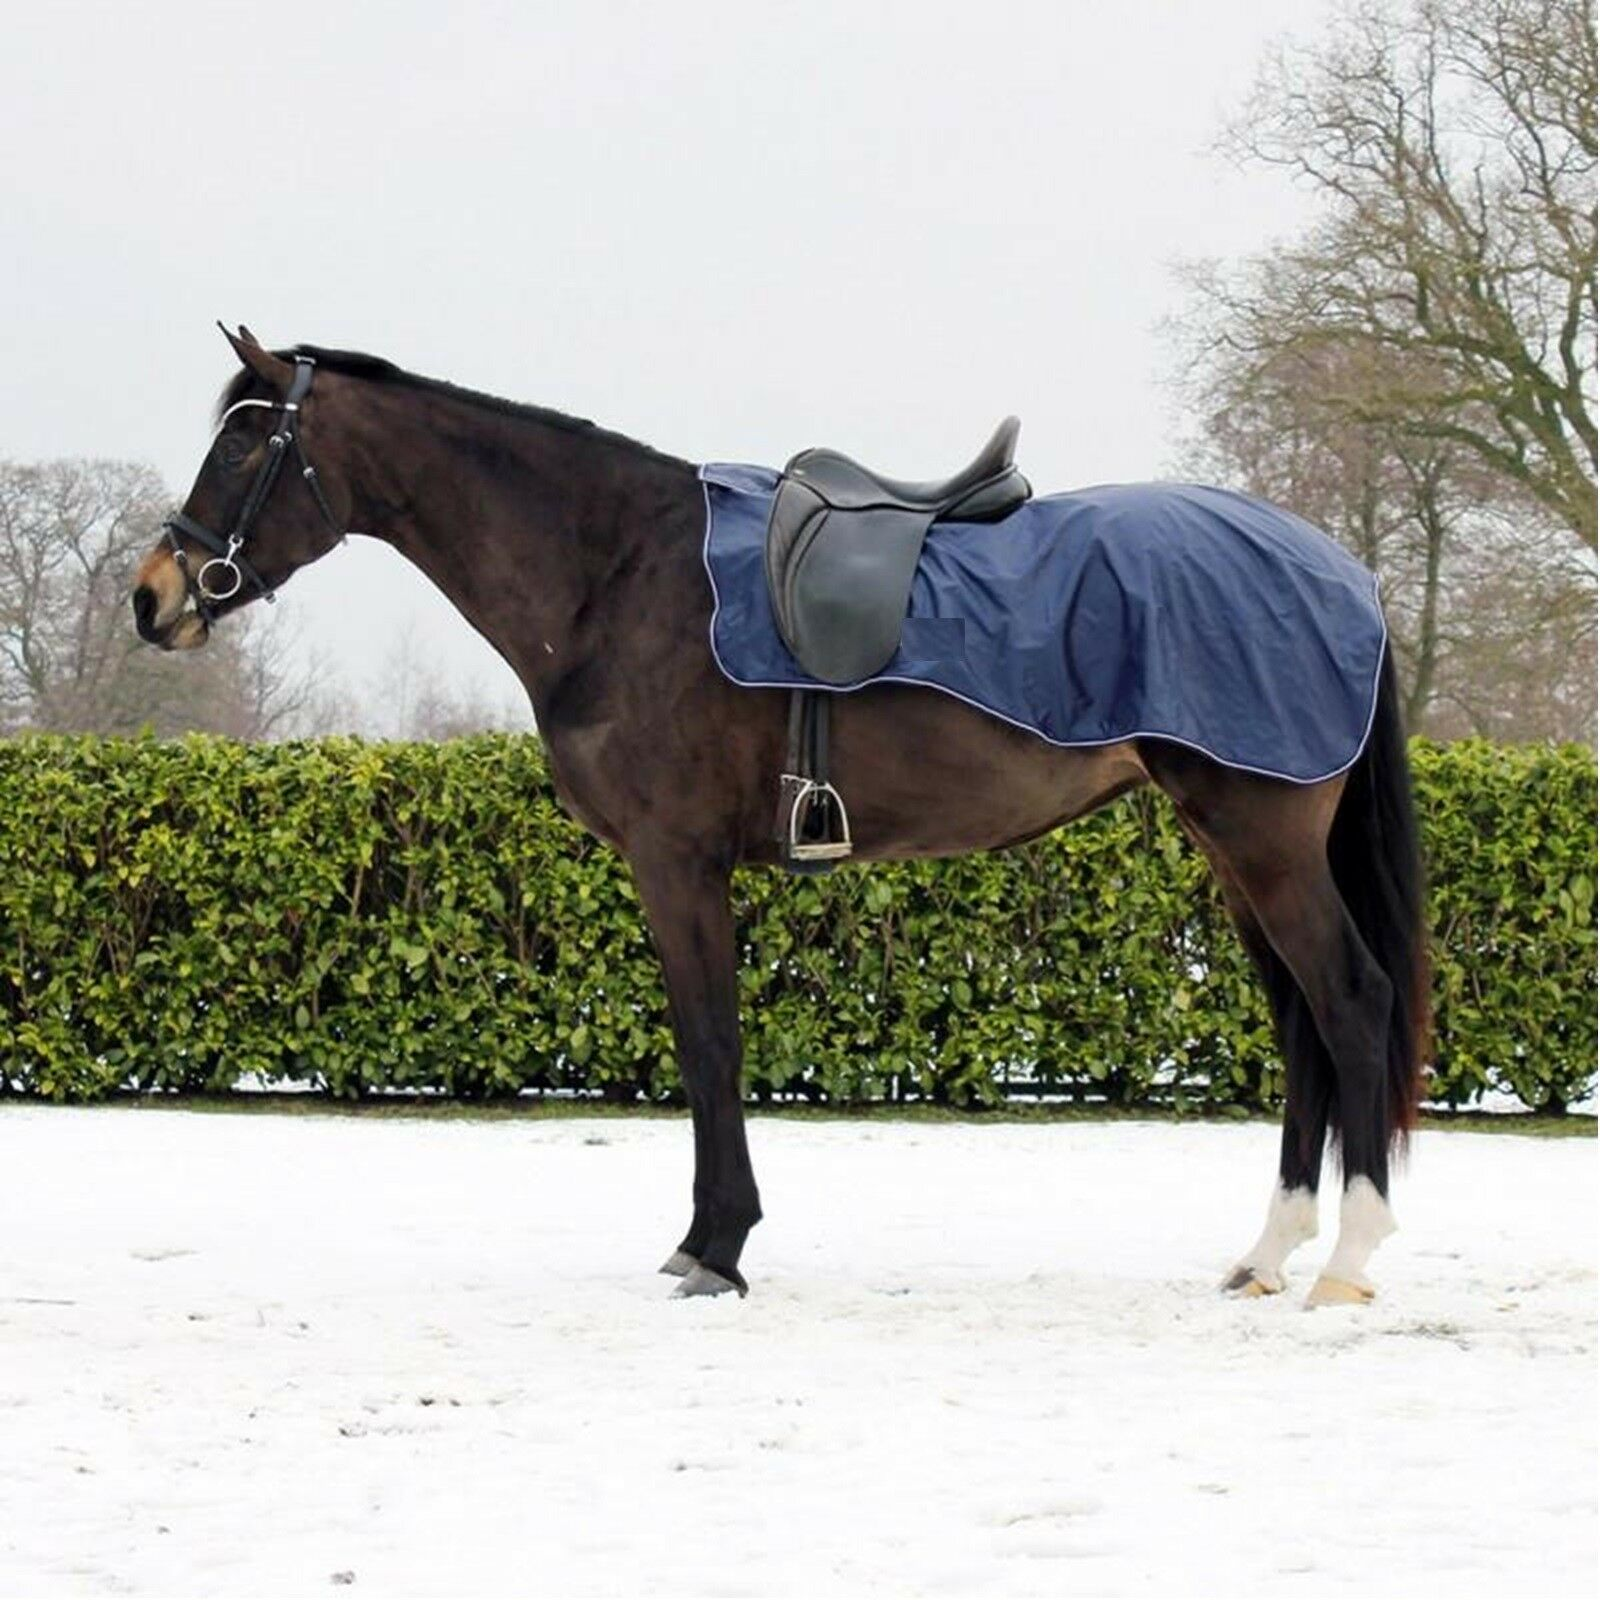 Horse Waterproof Equestrian Exercise Sheet Ride On Rug Fleece Lined Navy Large